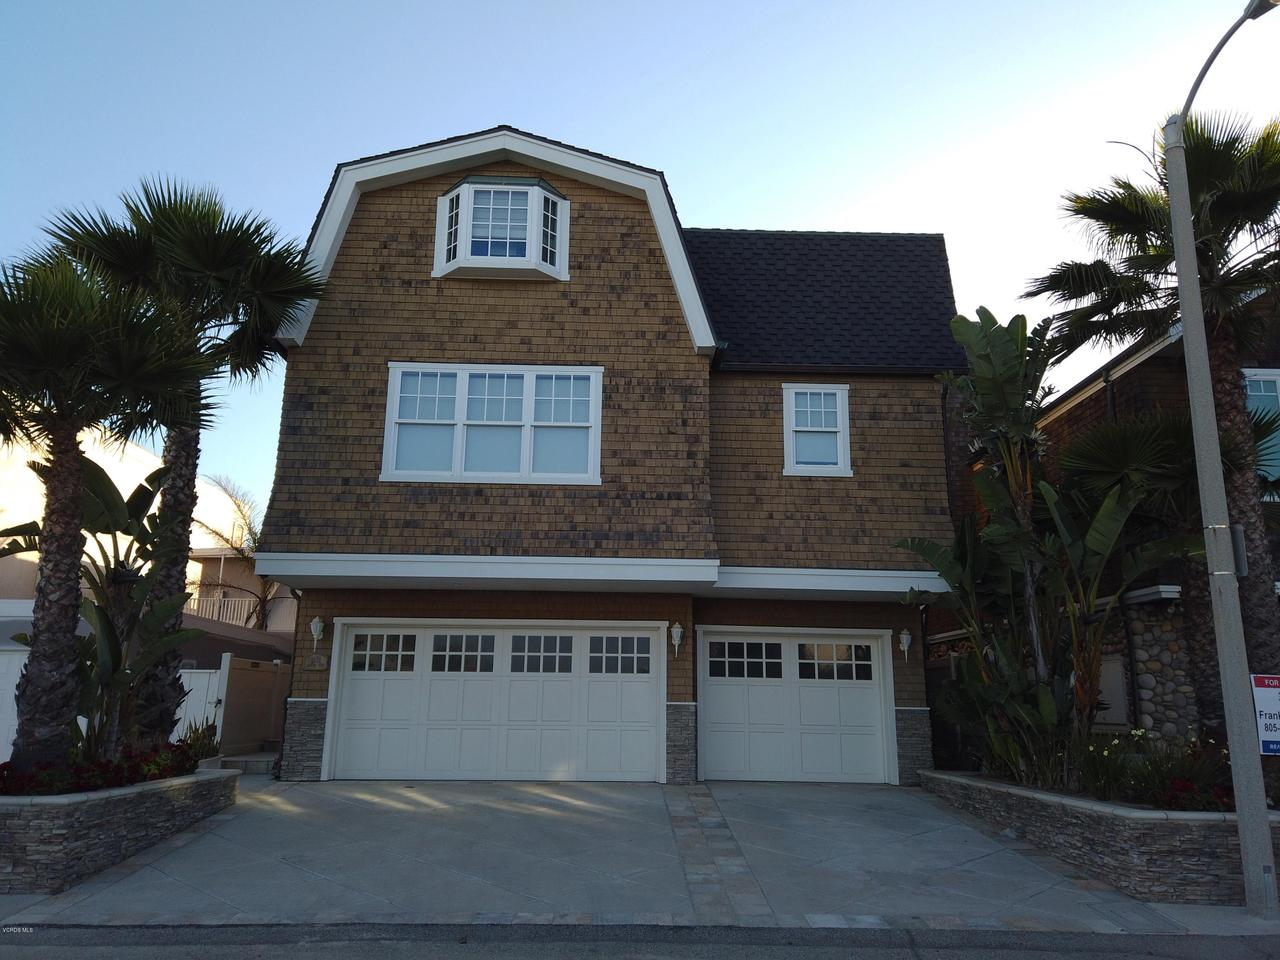 Photo of 1431 MARINE WAY, Oxnard, CA 93035